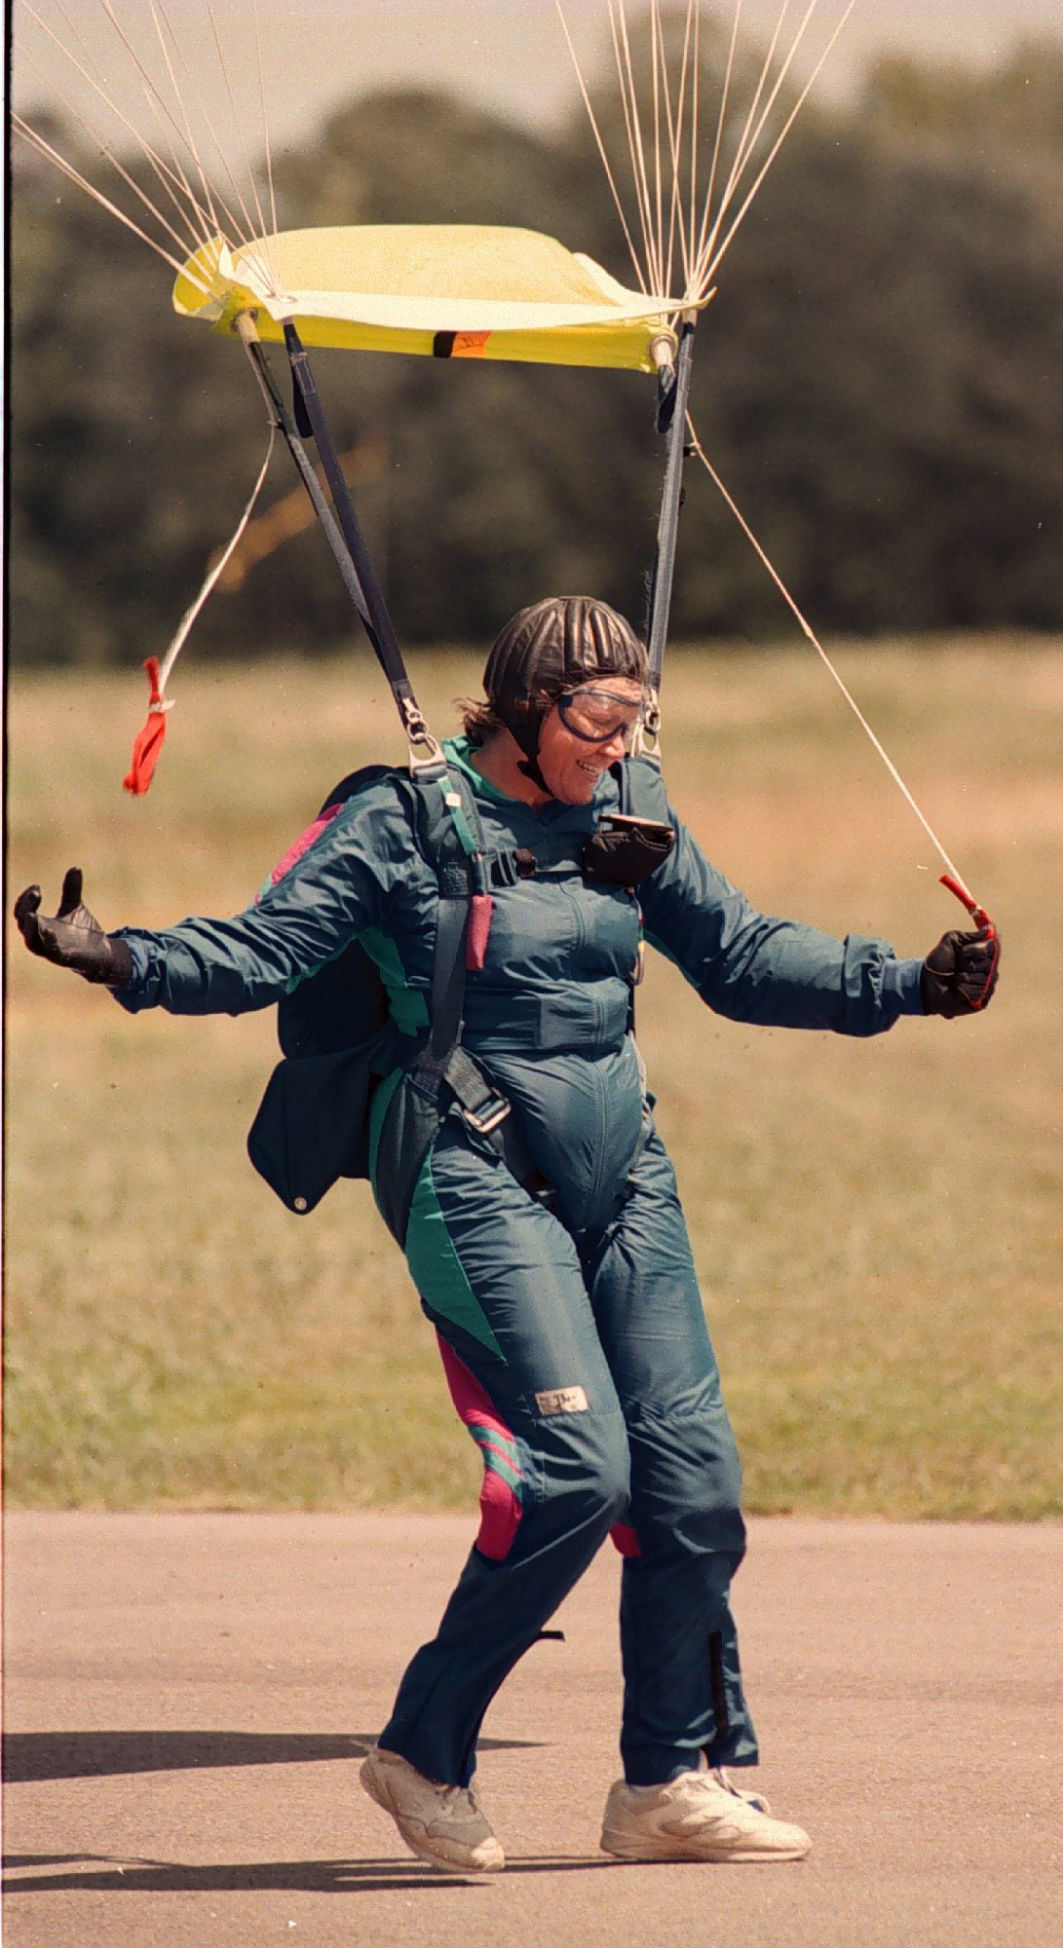 Skydiving 'queen' from Williamsburg with 15,000 jumps to her